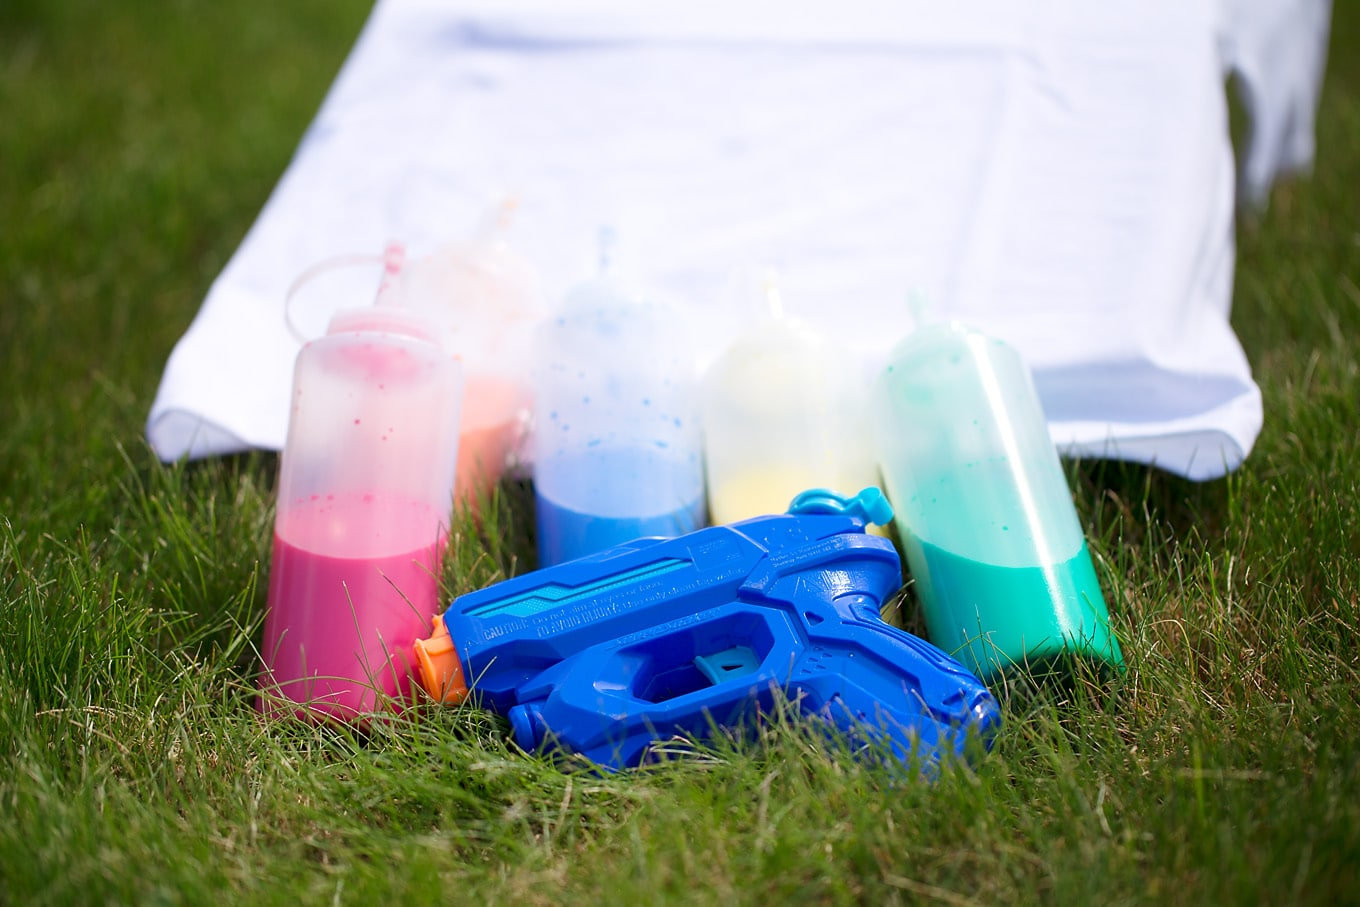 Supplies Needed for Squirt Gun Tie-Dye